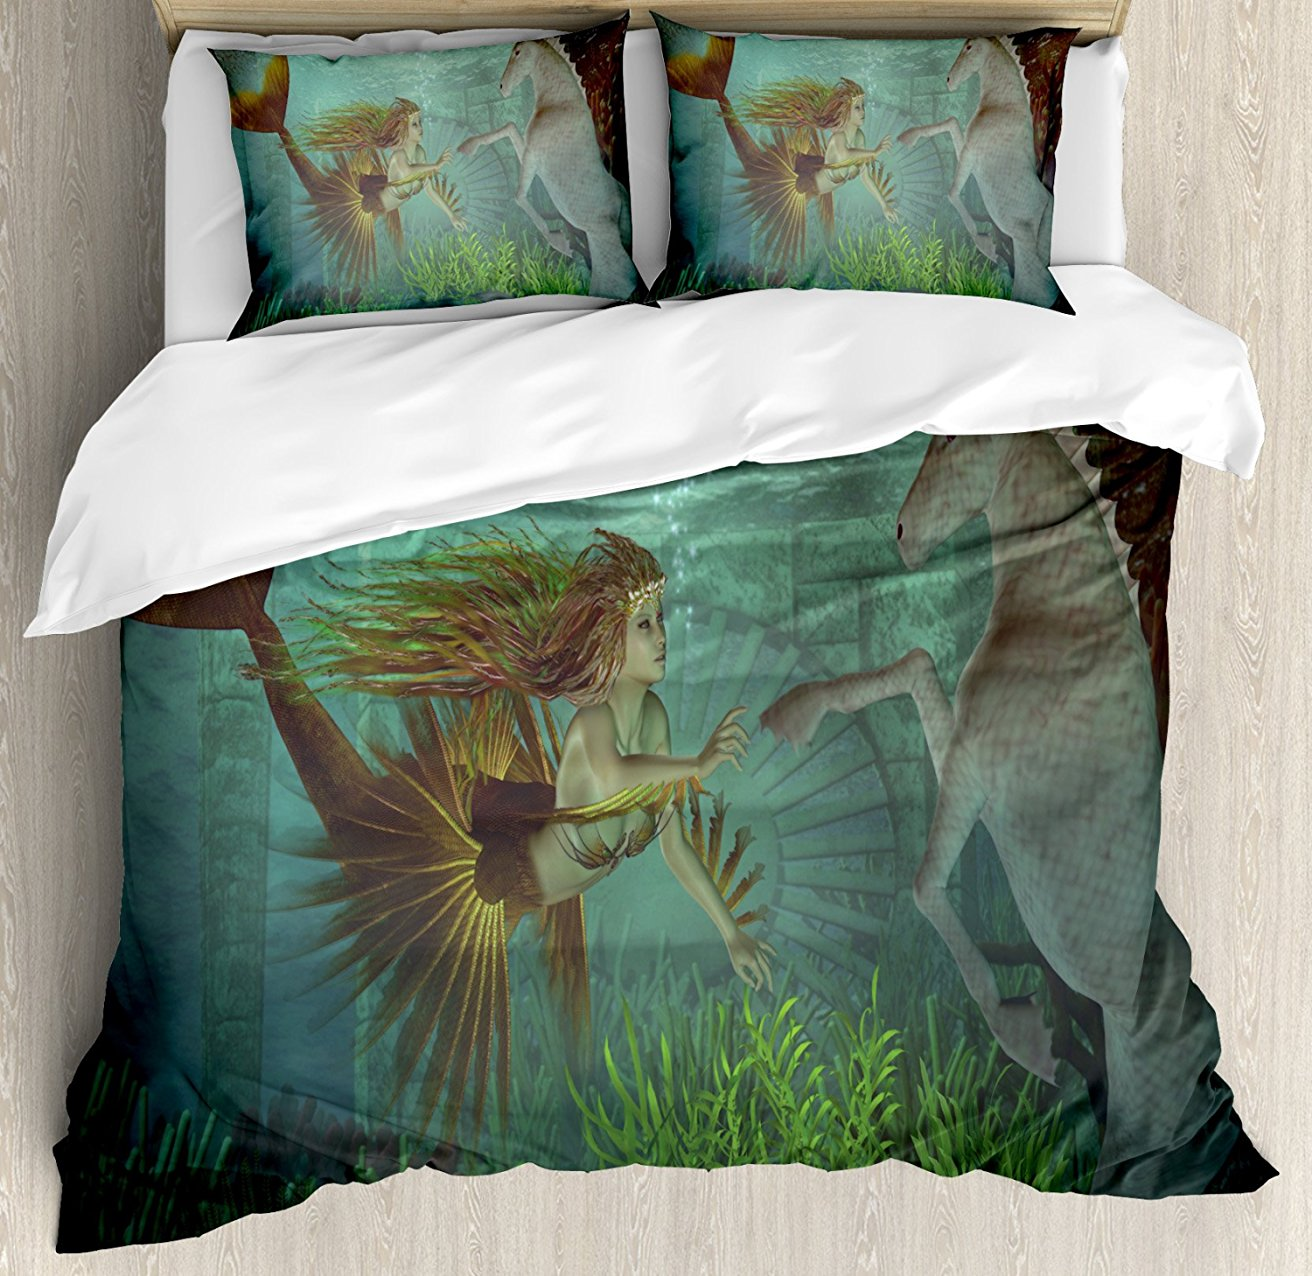 Mermaid Duvet Cover Set Mermaid Meets Seahorse Underwater World Fantasy Magical Fairytale Design 4 Piece Bedding